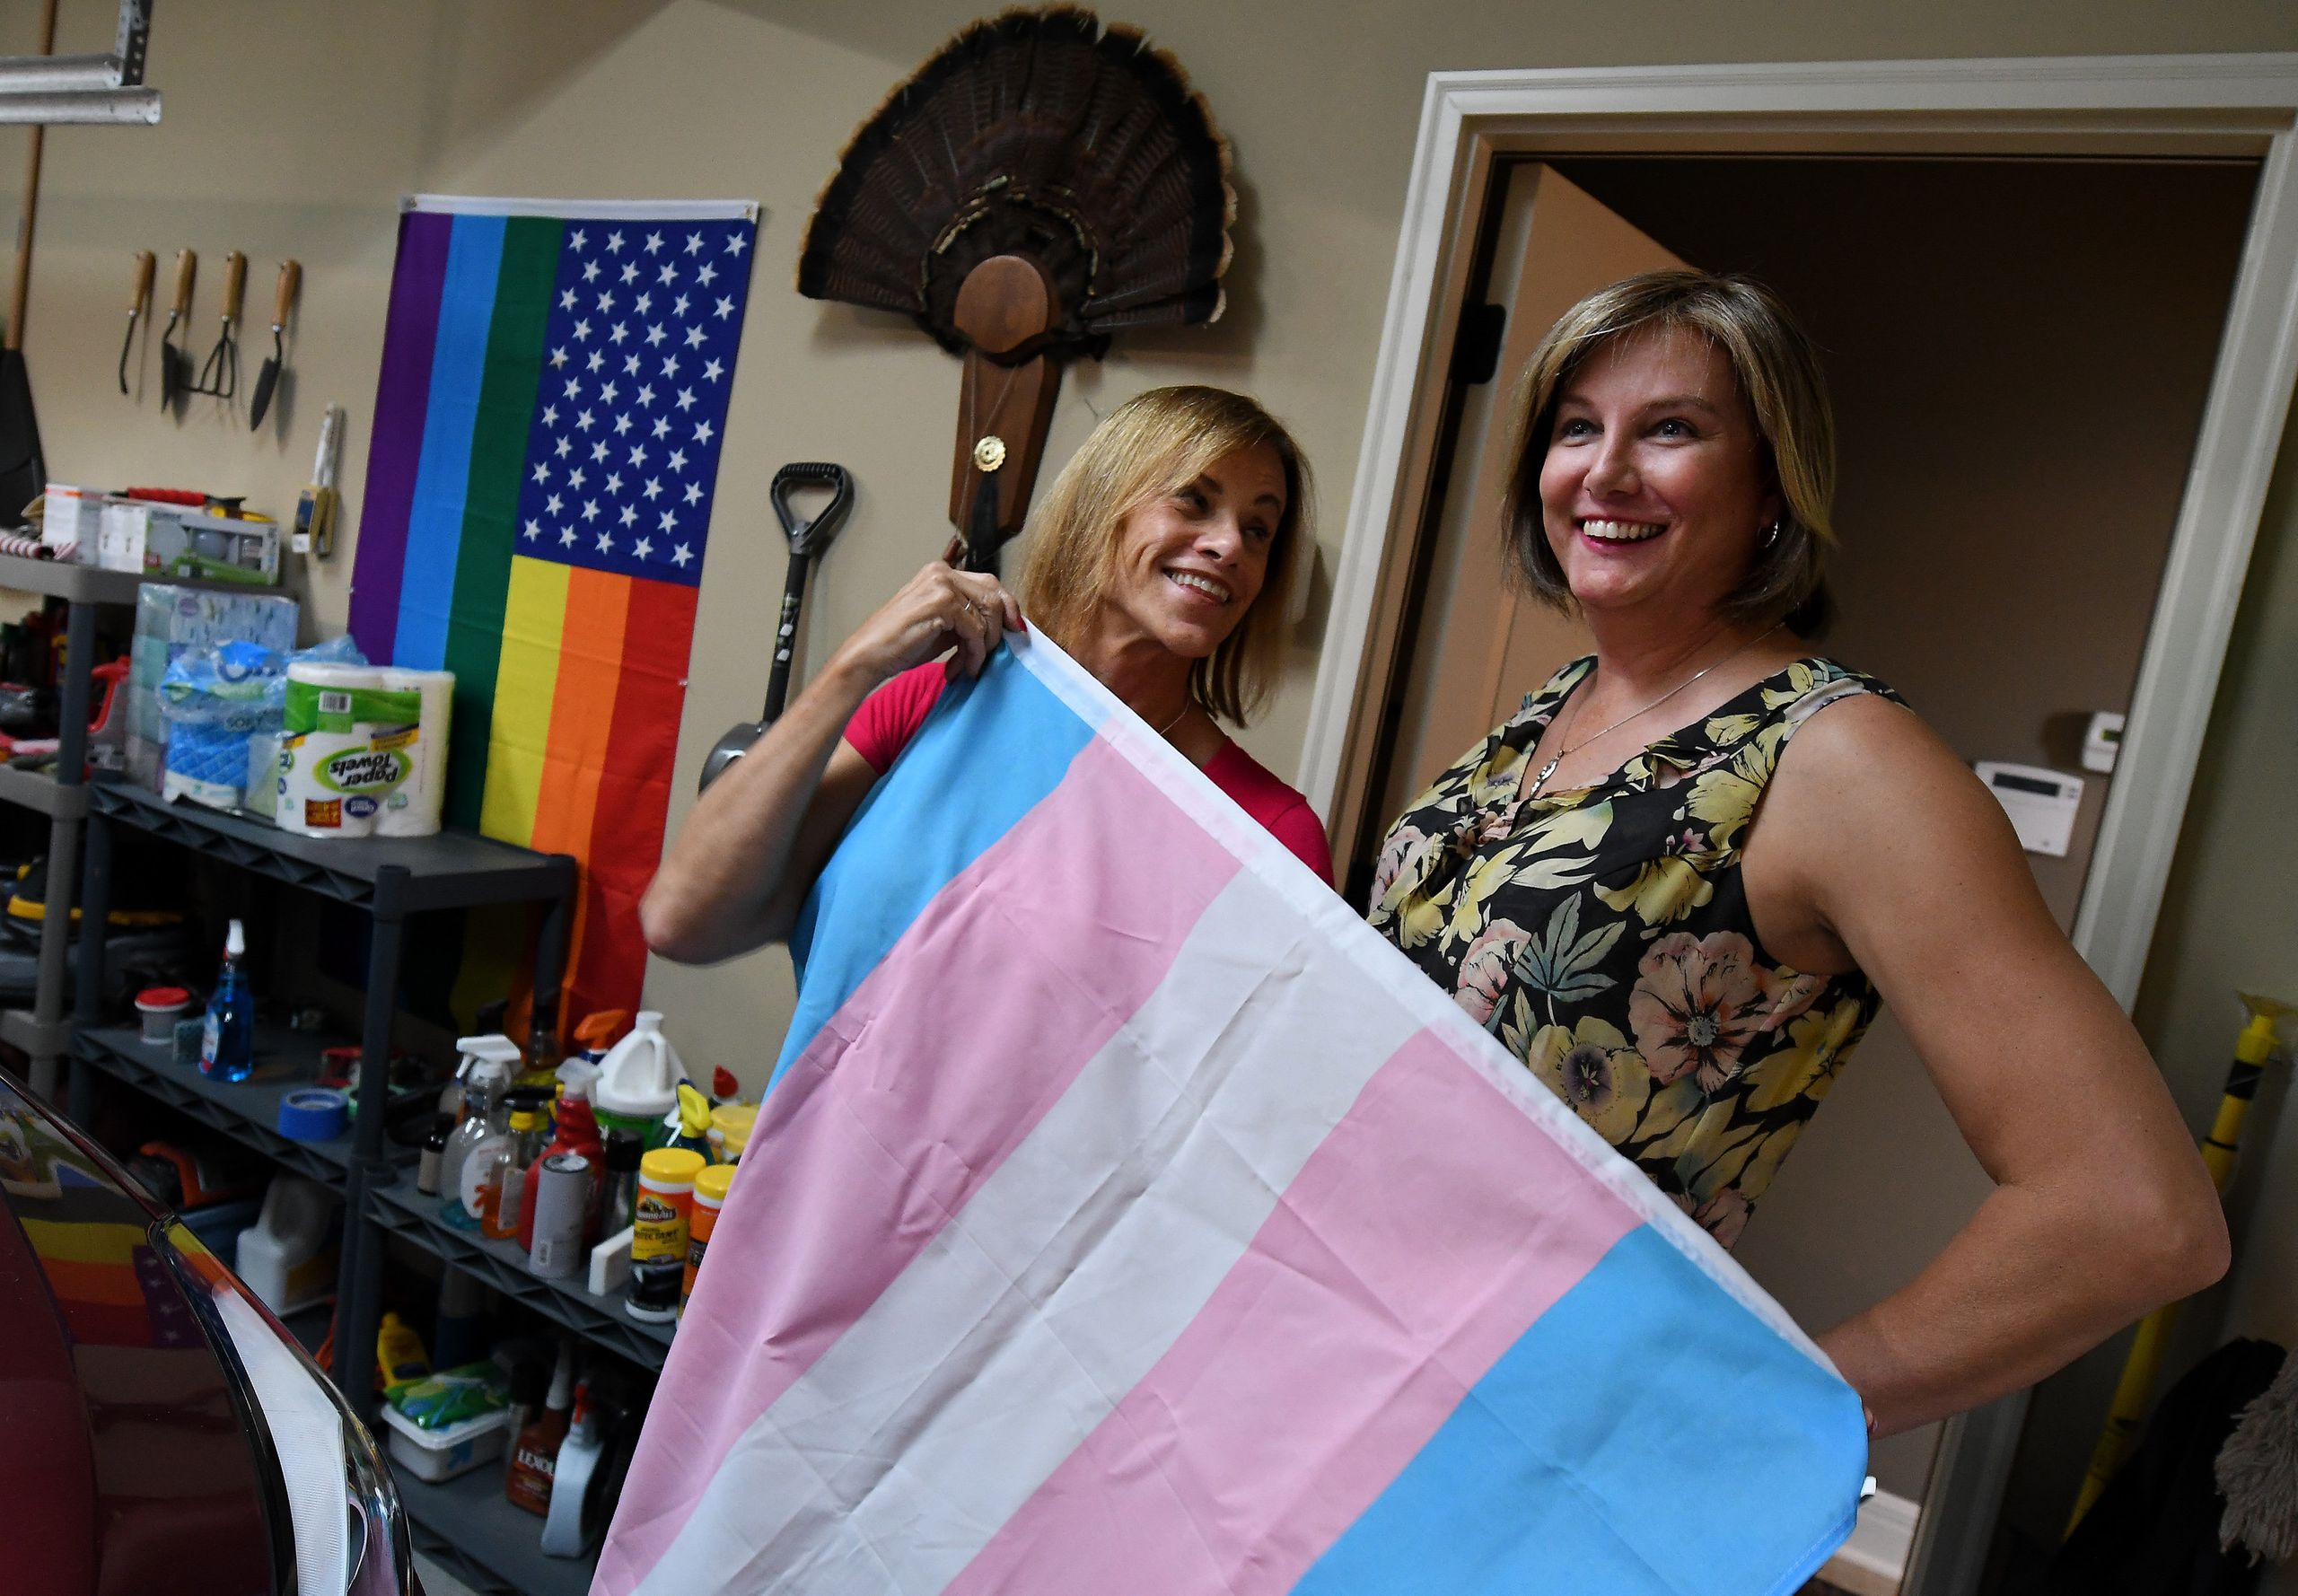 In the garage at their Shawnee home, Suzanne Wheeler and her fiancee, Marsha Riley, show off a transgender flag, wi